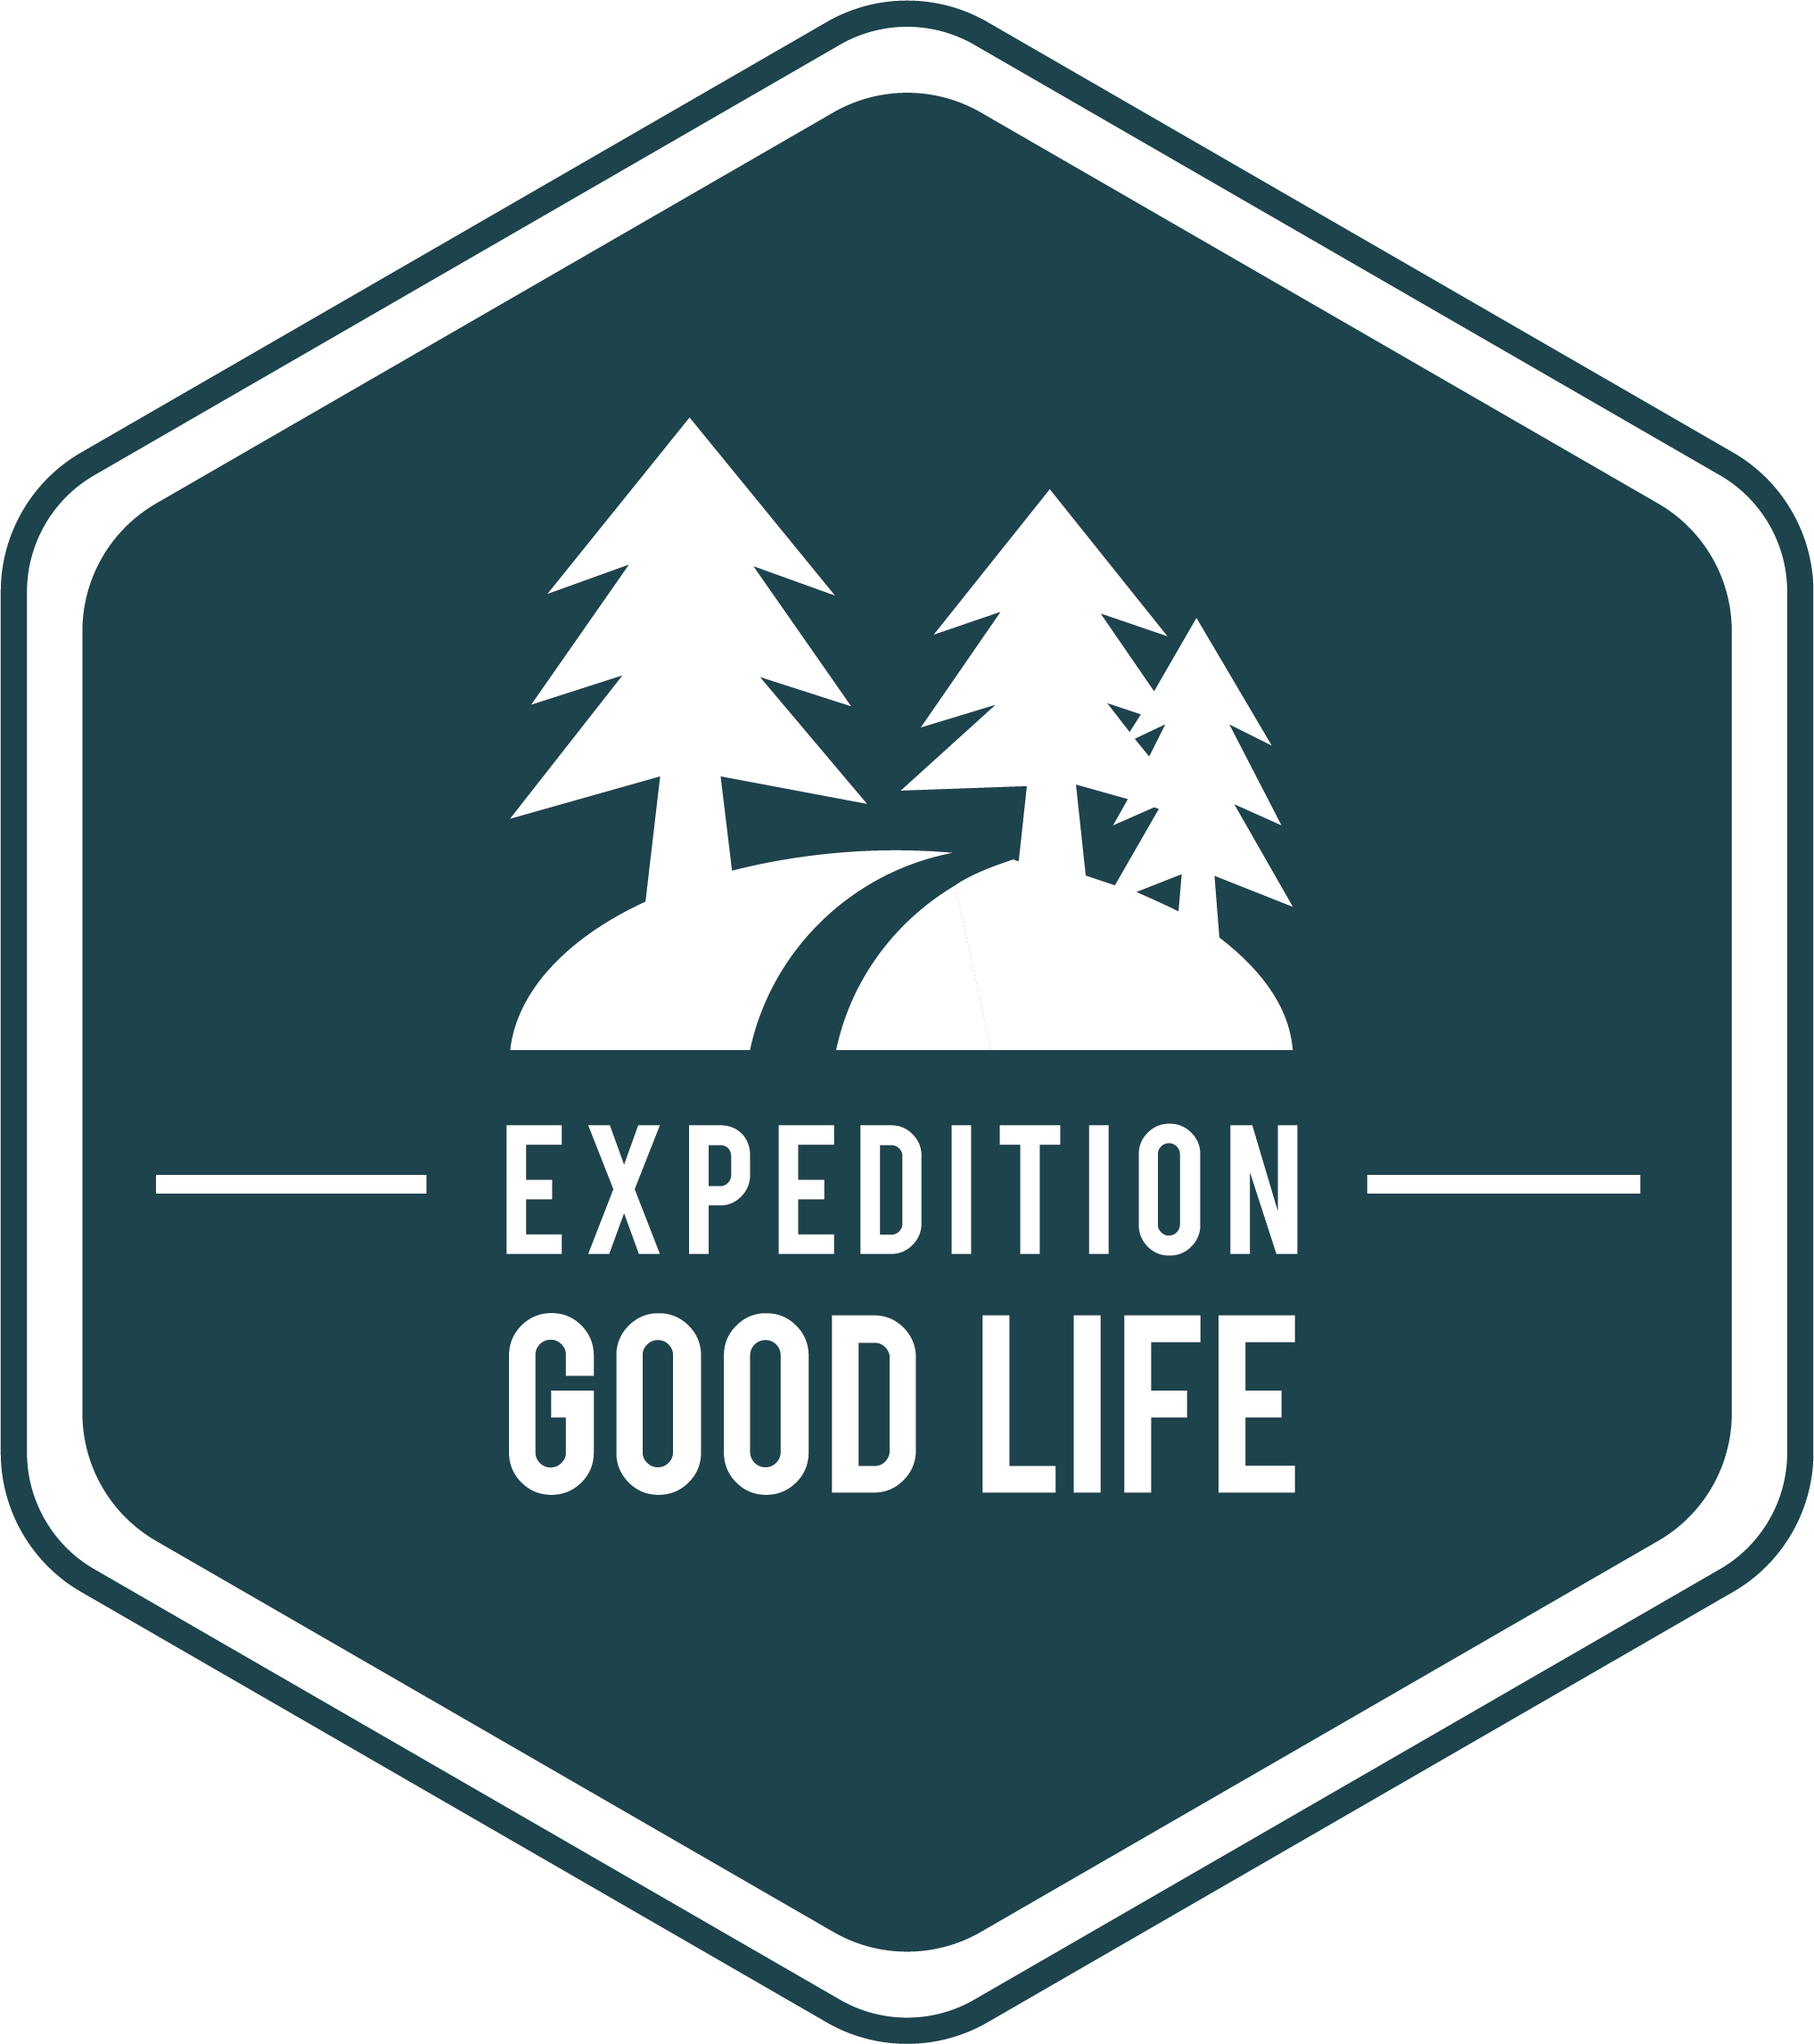 Expedition: Good Life